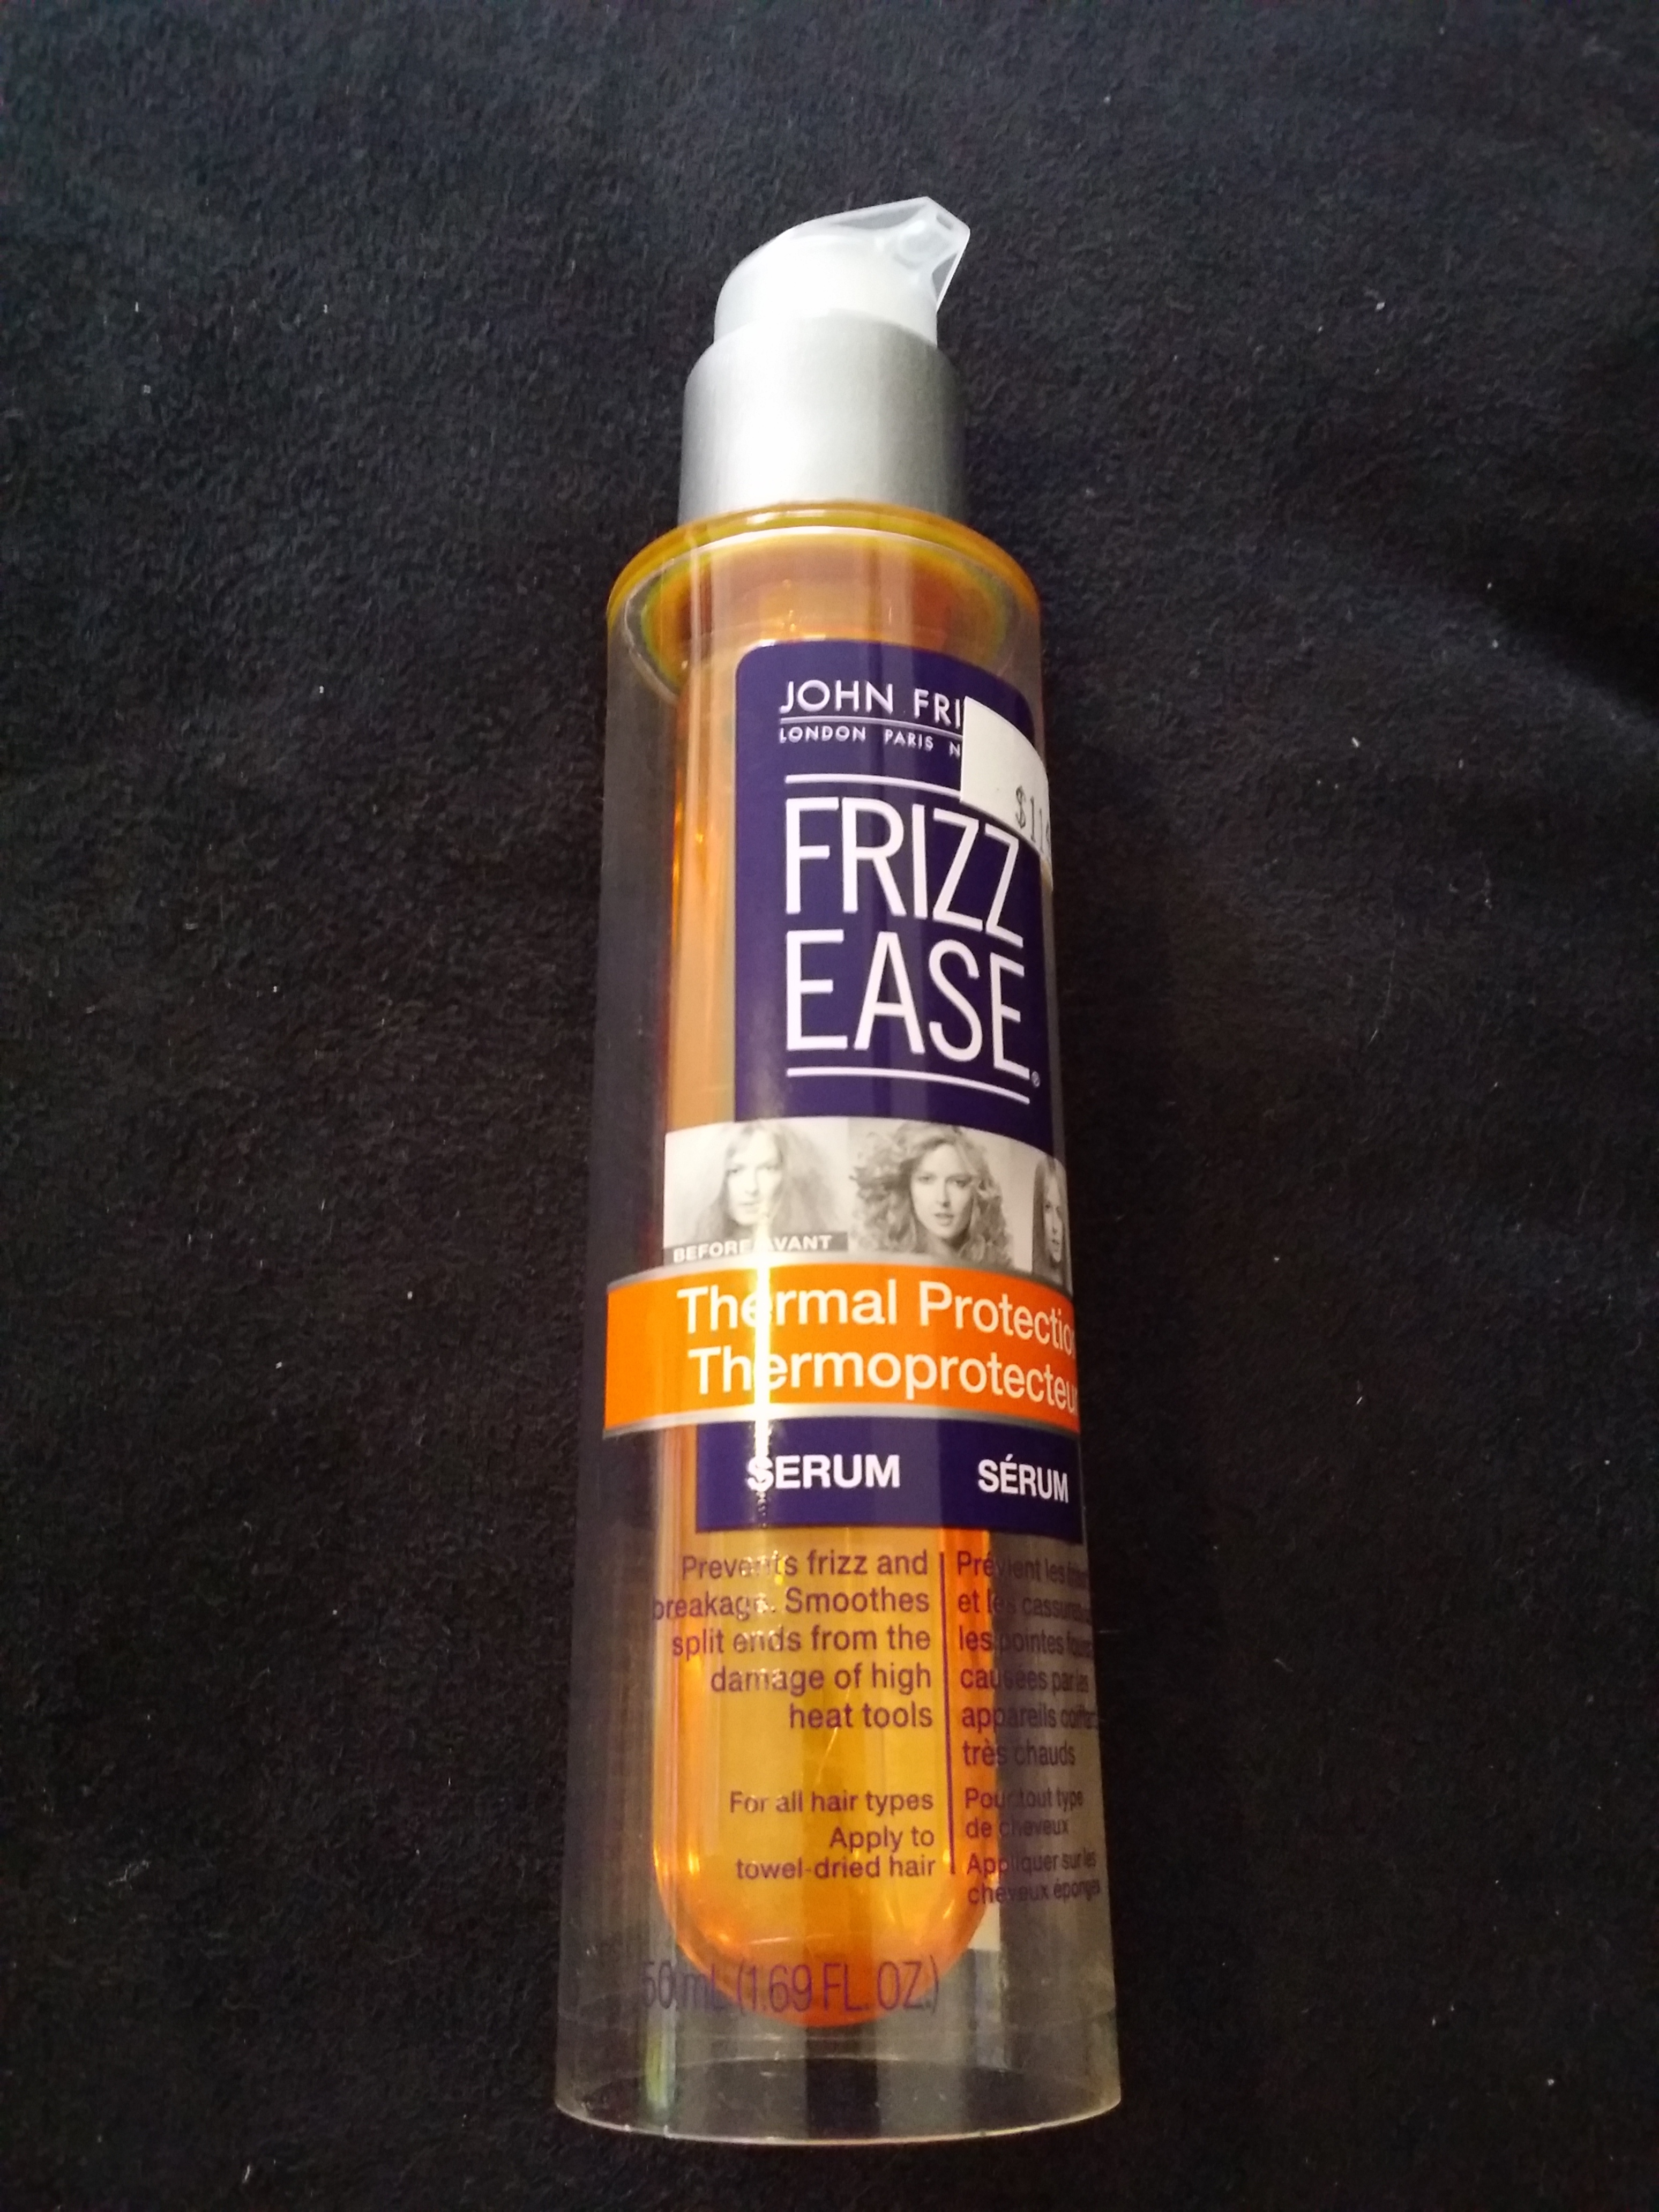 John Frieda Frizz Ease Thermal Protection Serum Reviews In